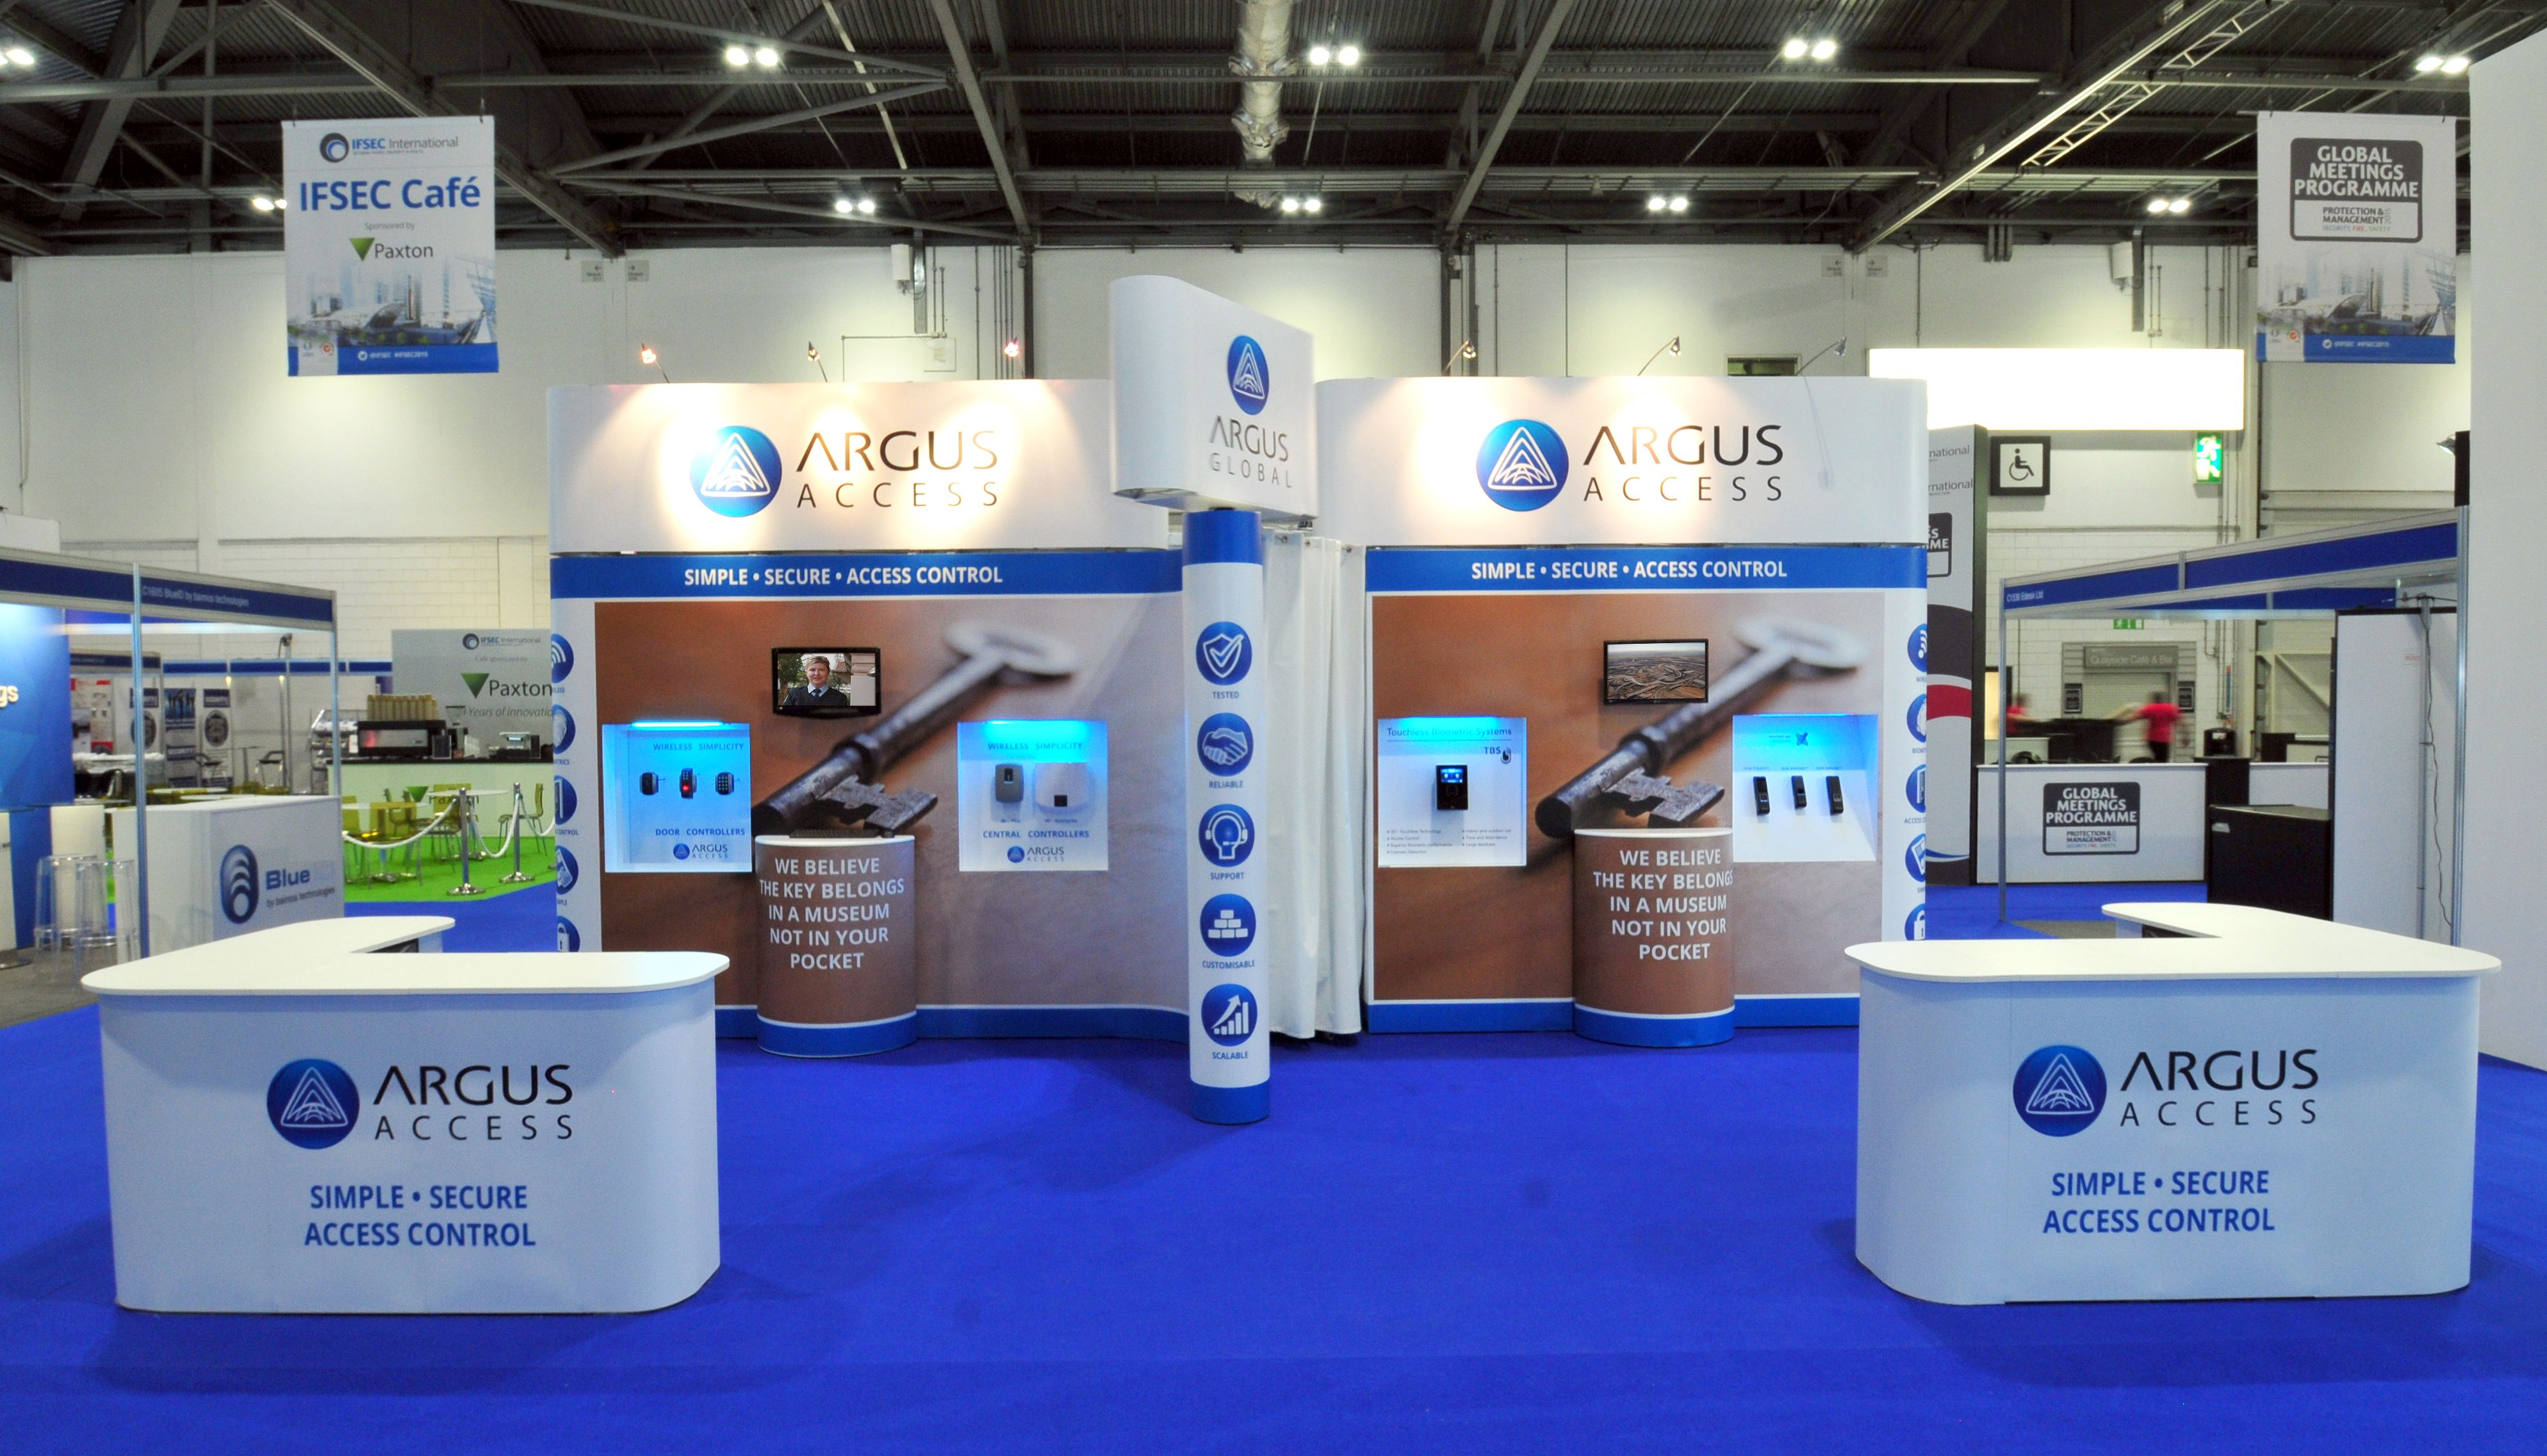 Modular Exhibition Stands Out : Modular exhibition stand for argus global by